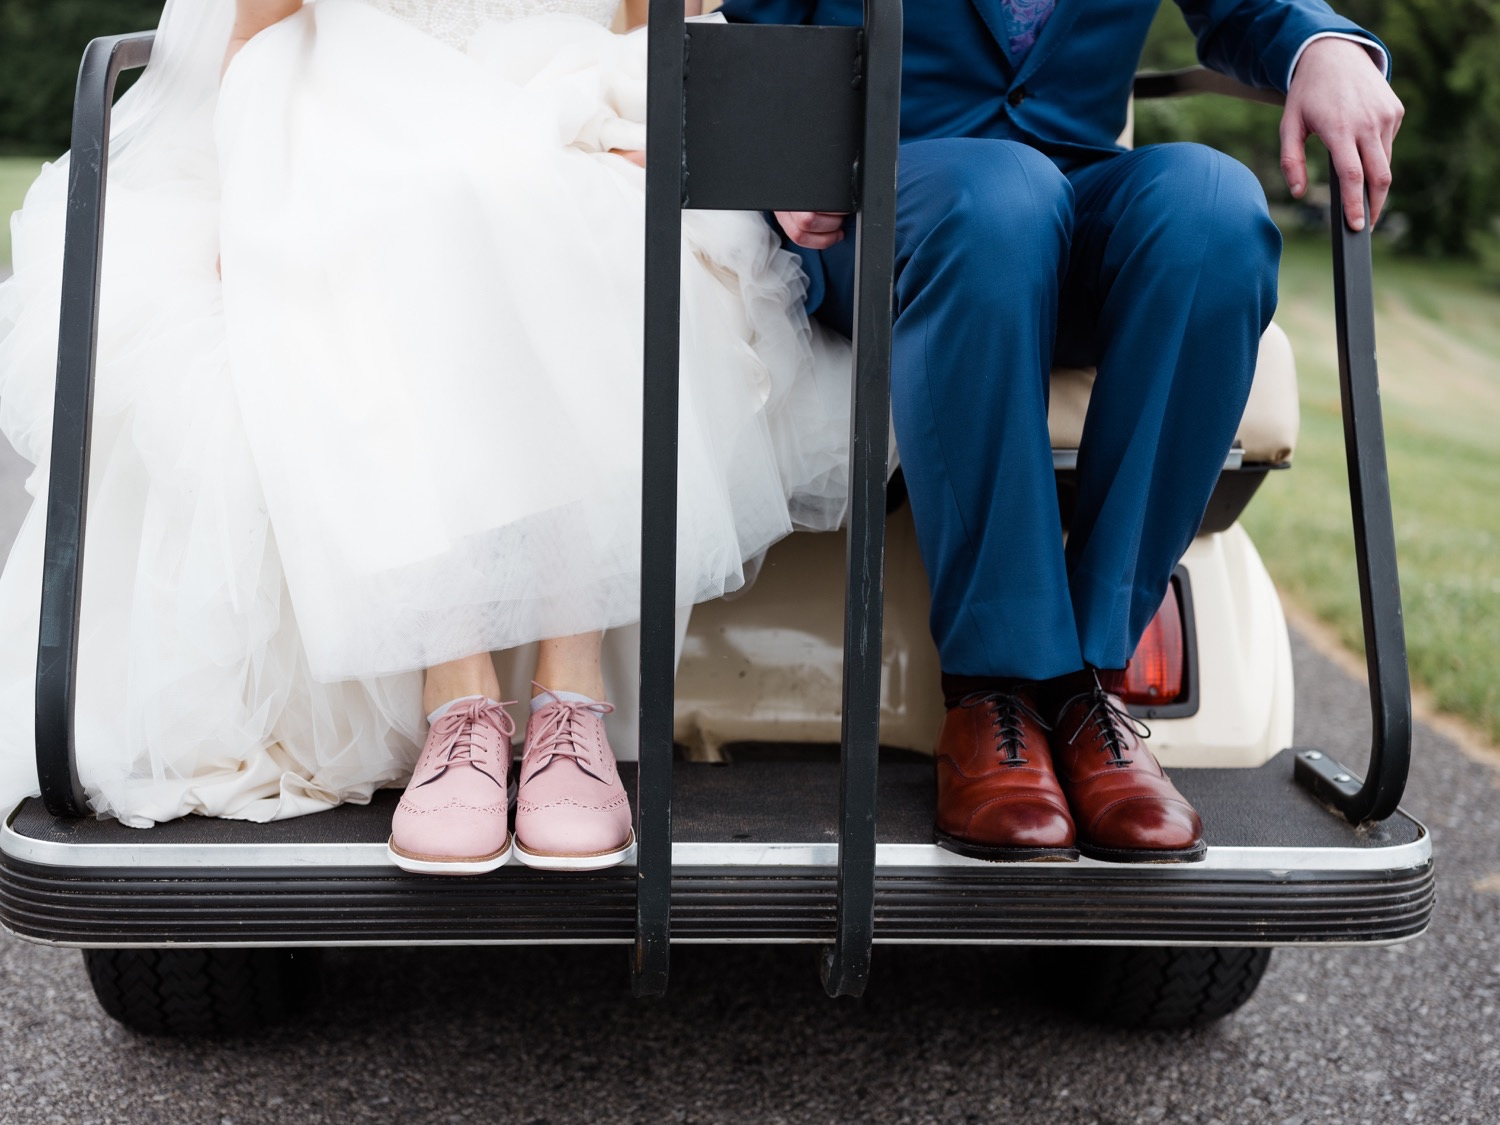 The Garrison Wedding, The Garrison venue, Hudson Valley wedding, hudson valley wedding photographer, catskills wedding photographer, the garrison wedding photos, best catskills wedding photographer, his and hers shoes, cute wedding photo ideas, shoes wedding, wedding shoes ideas